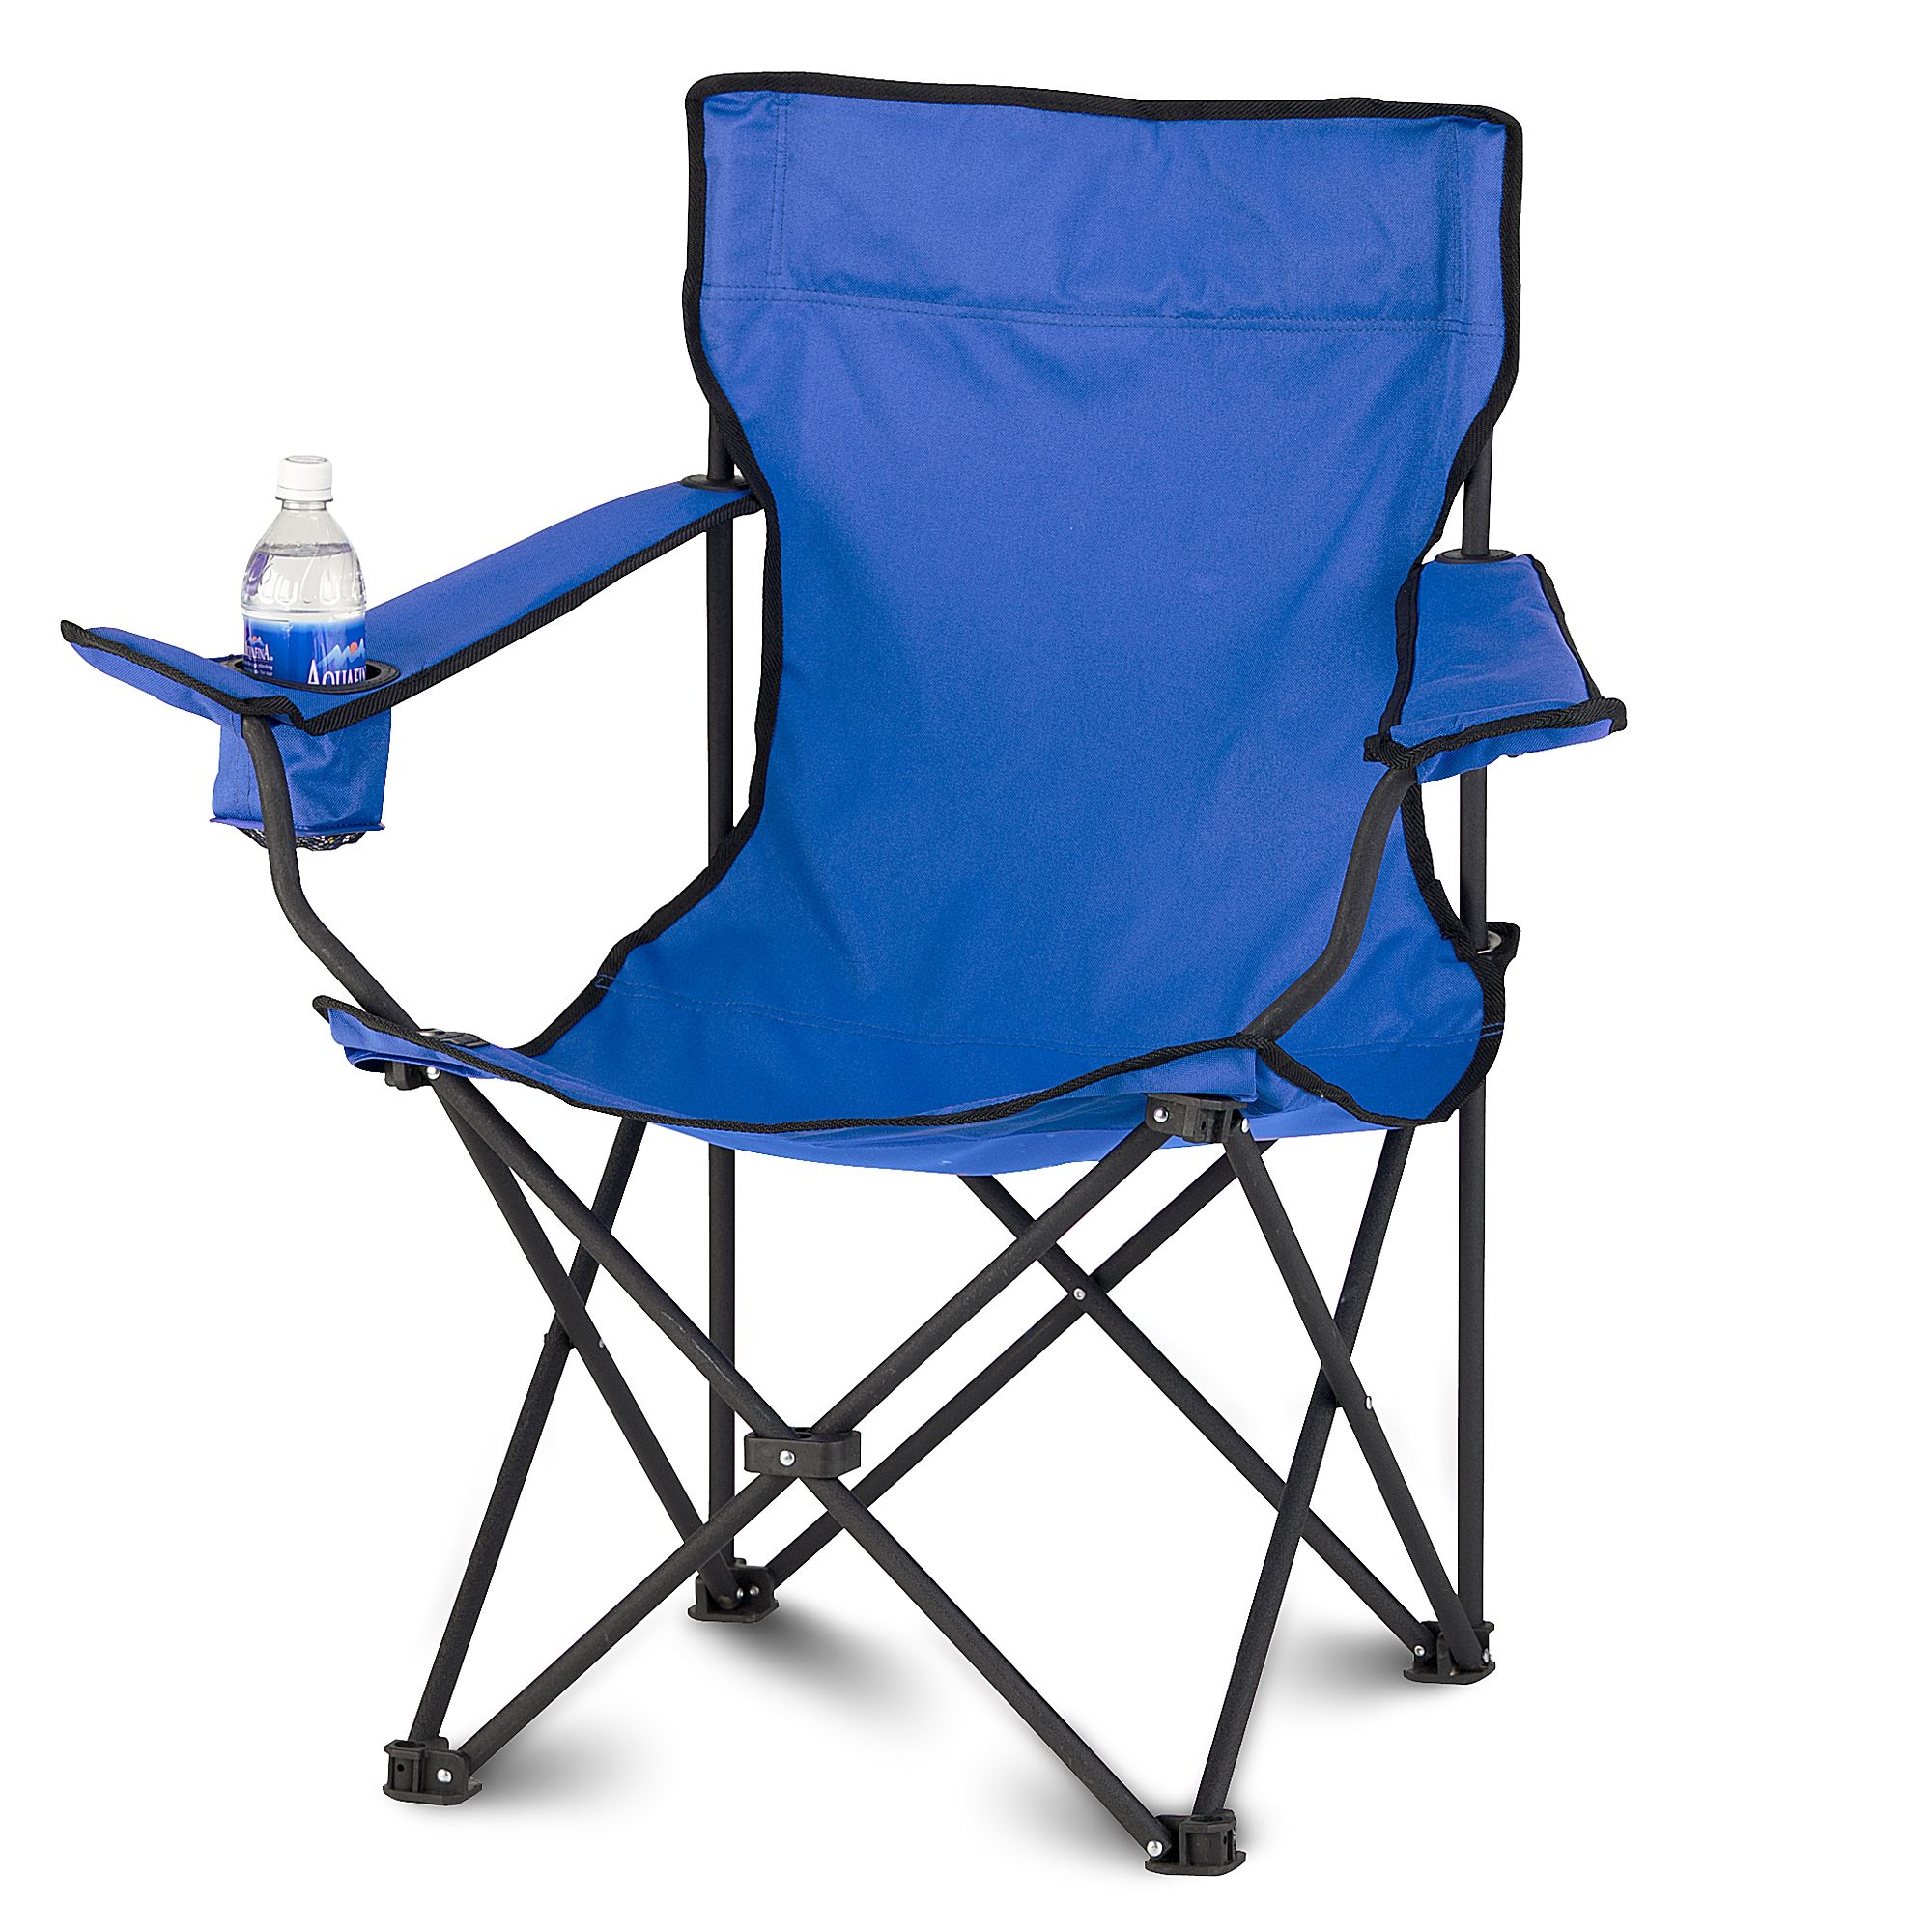 Bazaar Folding Camping Chair Bed Bath Beyond House In 2019